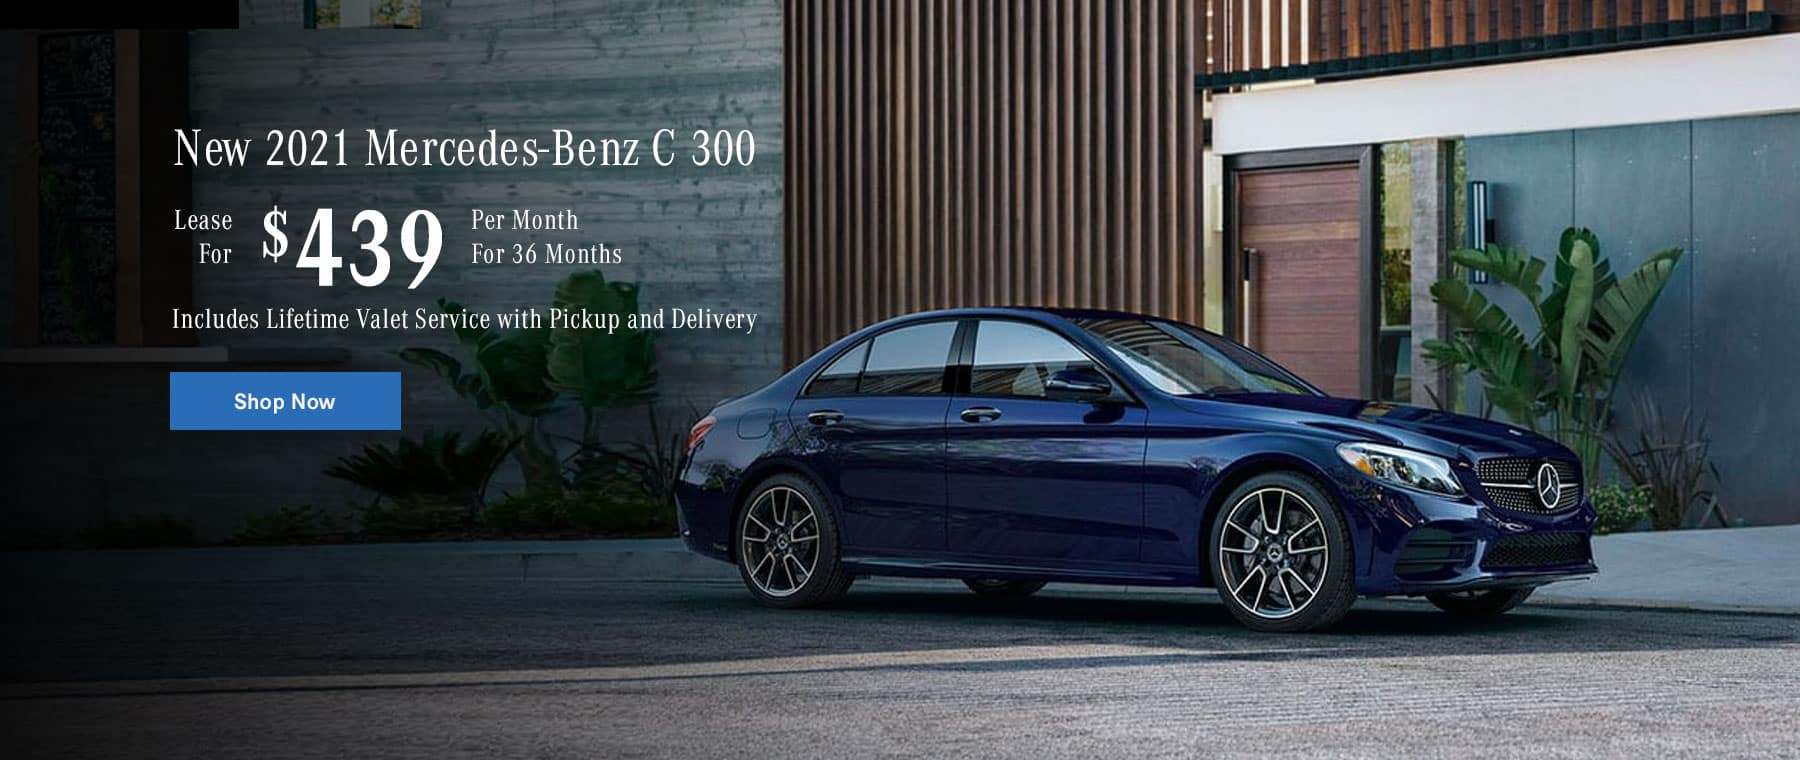 New 2021 Mercedes-Benz C300 Lease for $439/mo. For 36 mo. Includes Lifetime Valet Service with Pickup and Delivery